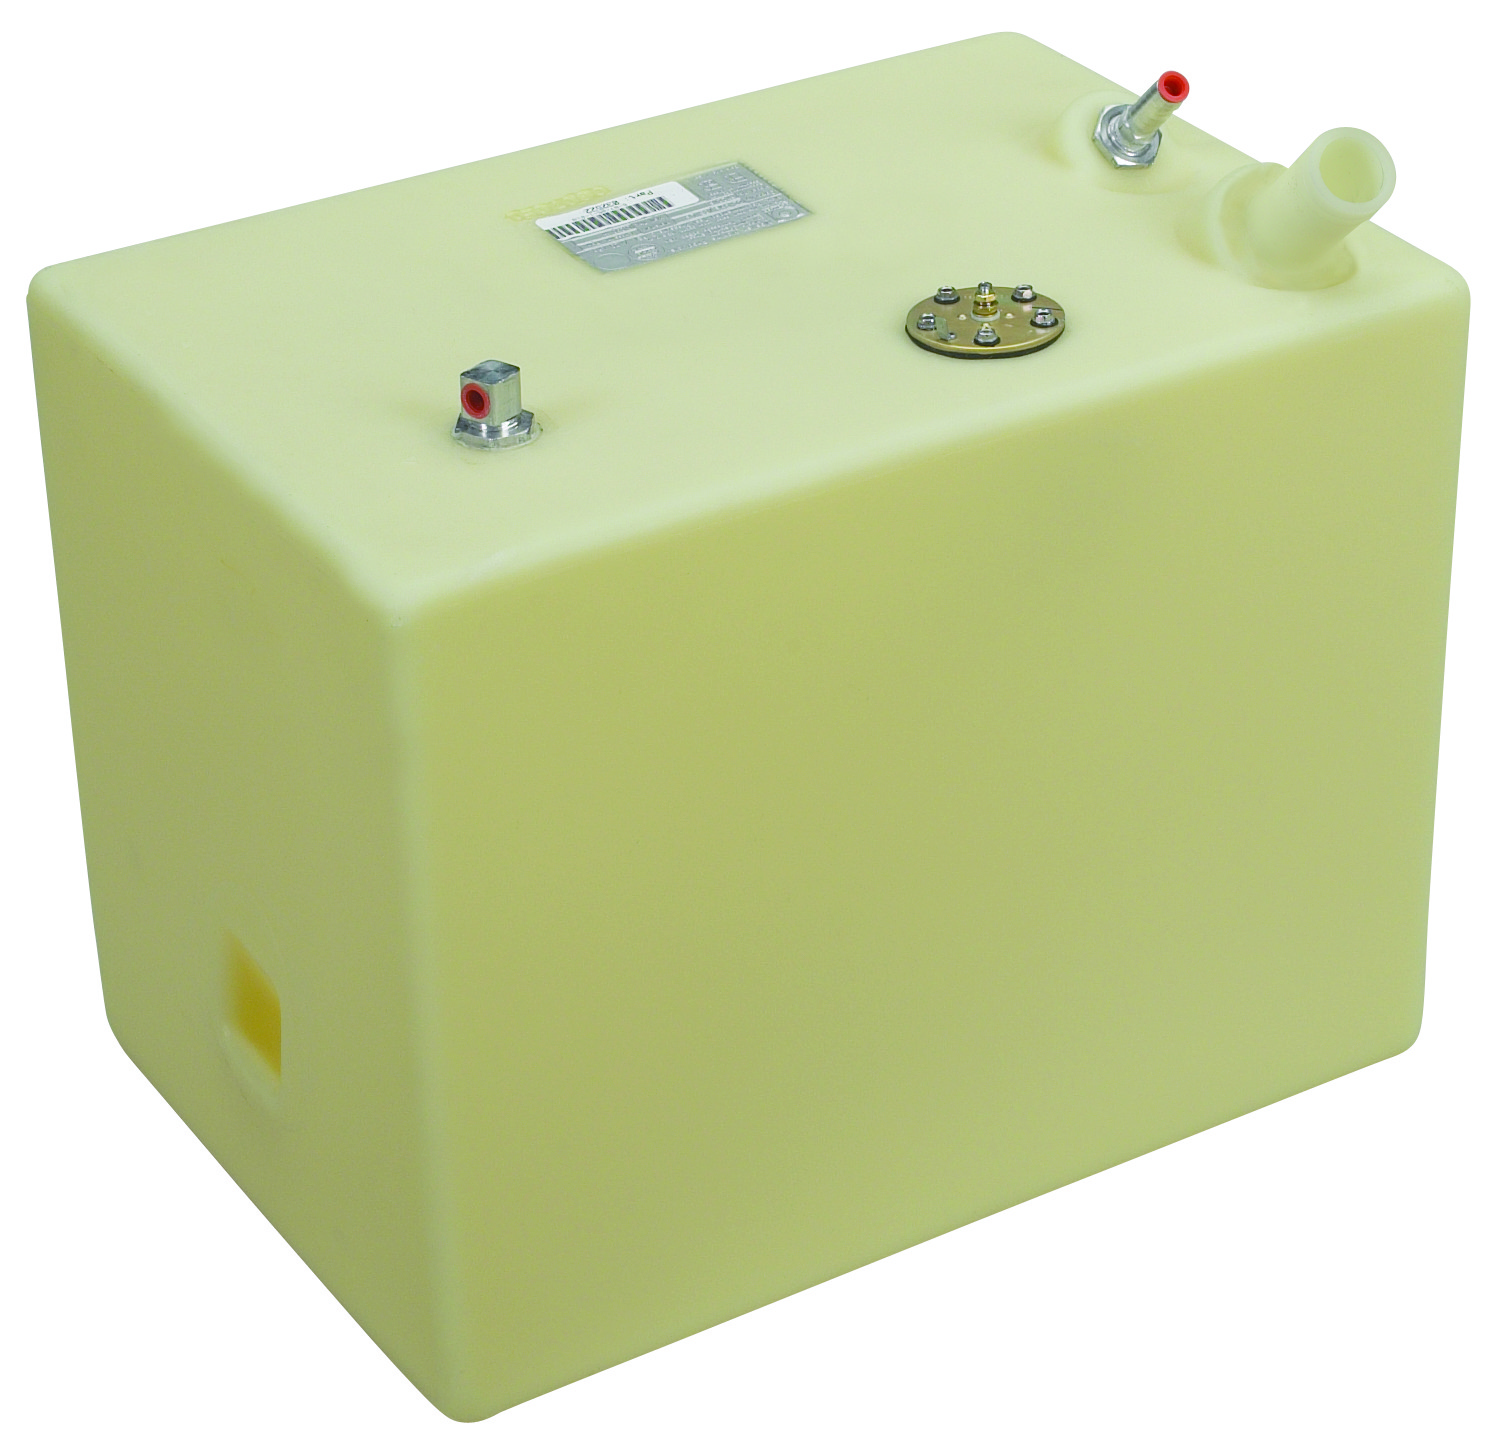 22 Gallon Rectangular Shaped Fuel Tank, 22″x17″x15″, FOLT 2216-1 (032522)